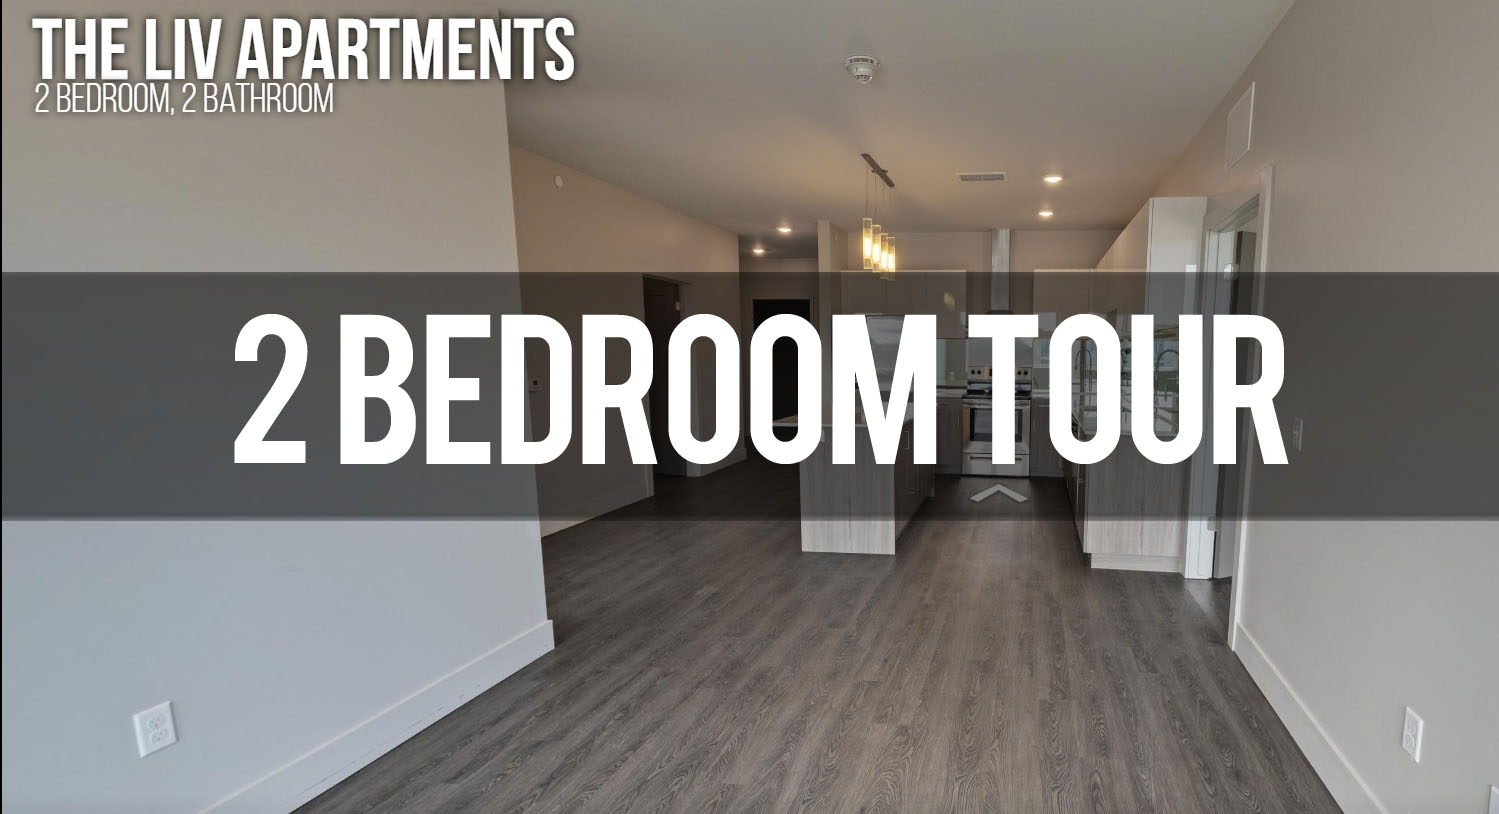 Virtual Tour of 2 bedroom, 2 bathroom at The Liv Apartments